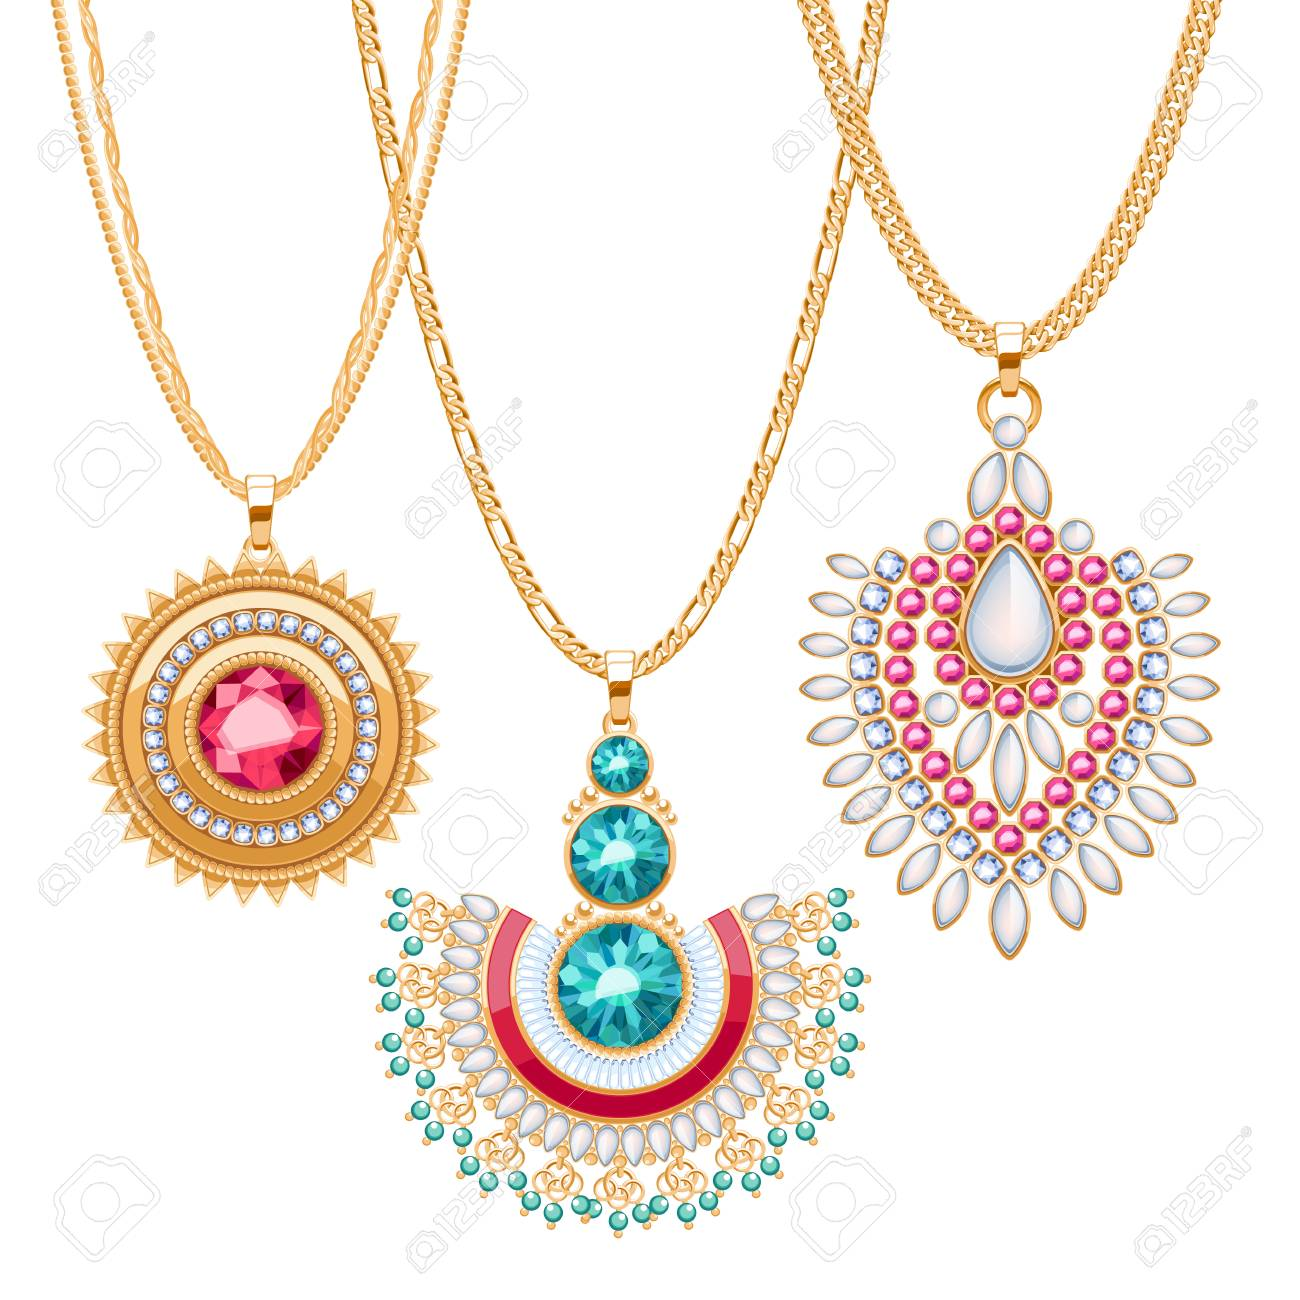 Set of golden chains with different pendants precious necklaces set of golden chains with different pendants precious necklaces ethnic indian style brooches pendants aloadofball Gallery